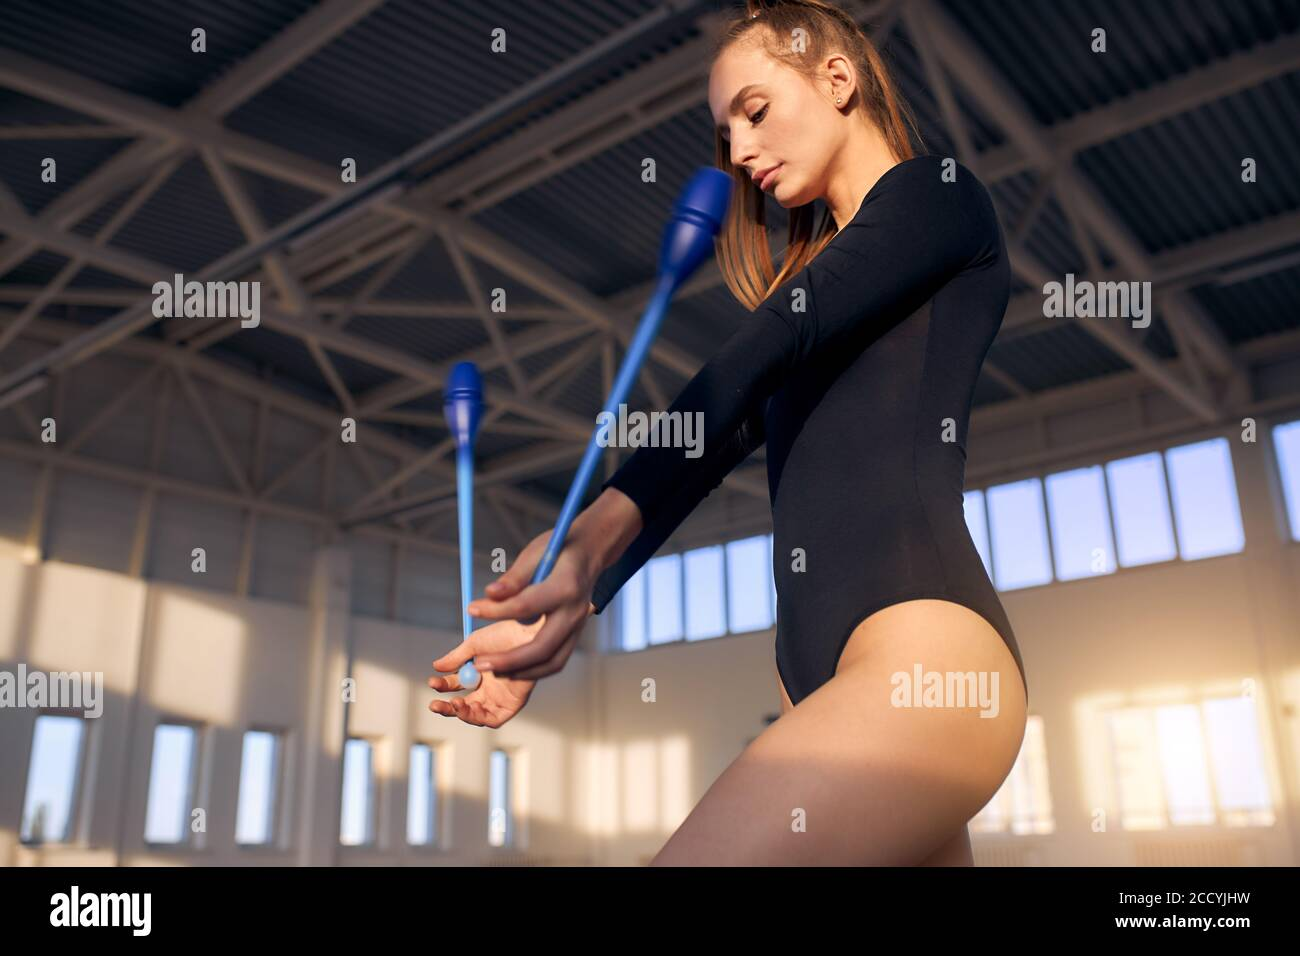 Charming beautiful girl training in storts hall, keeping dark blue gymnastics clubs in hands,looks down, shot from below, active lifestyle concept Stock Photo